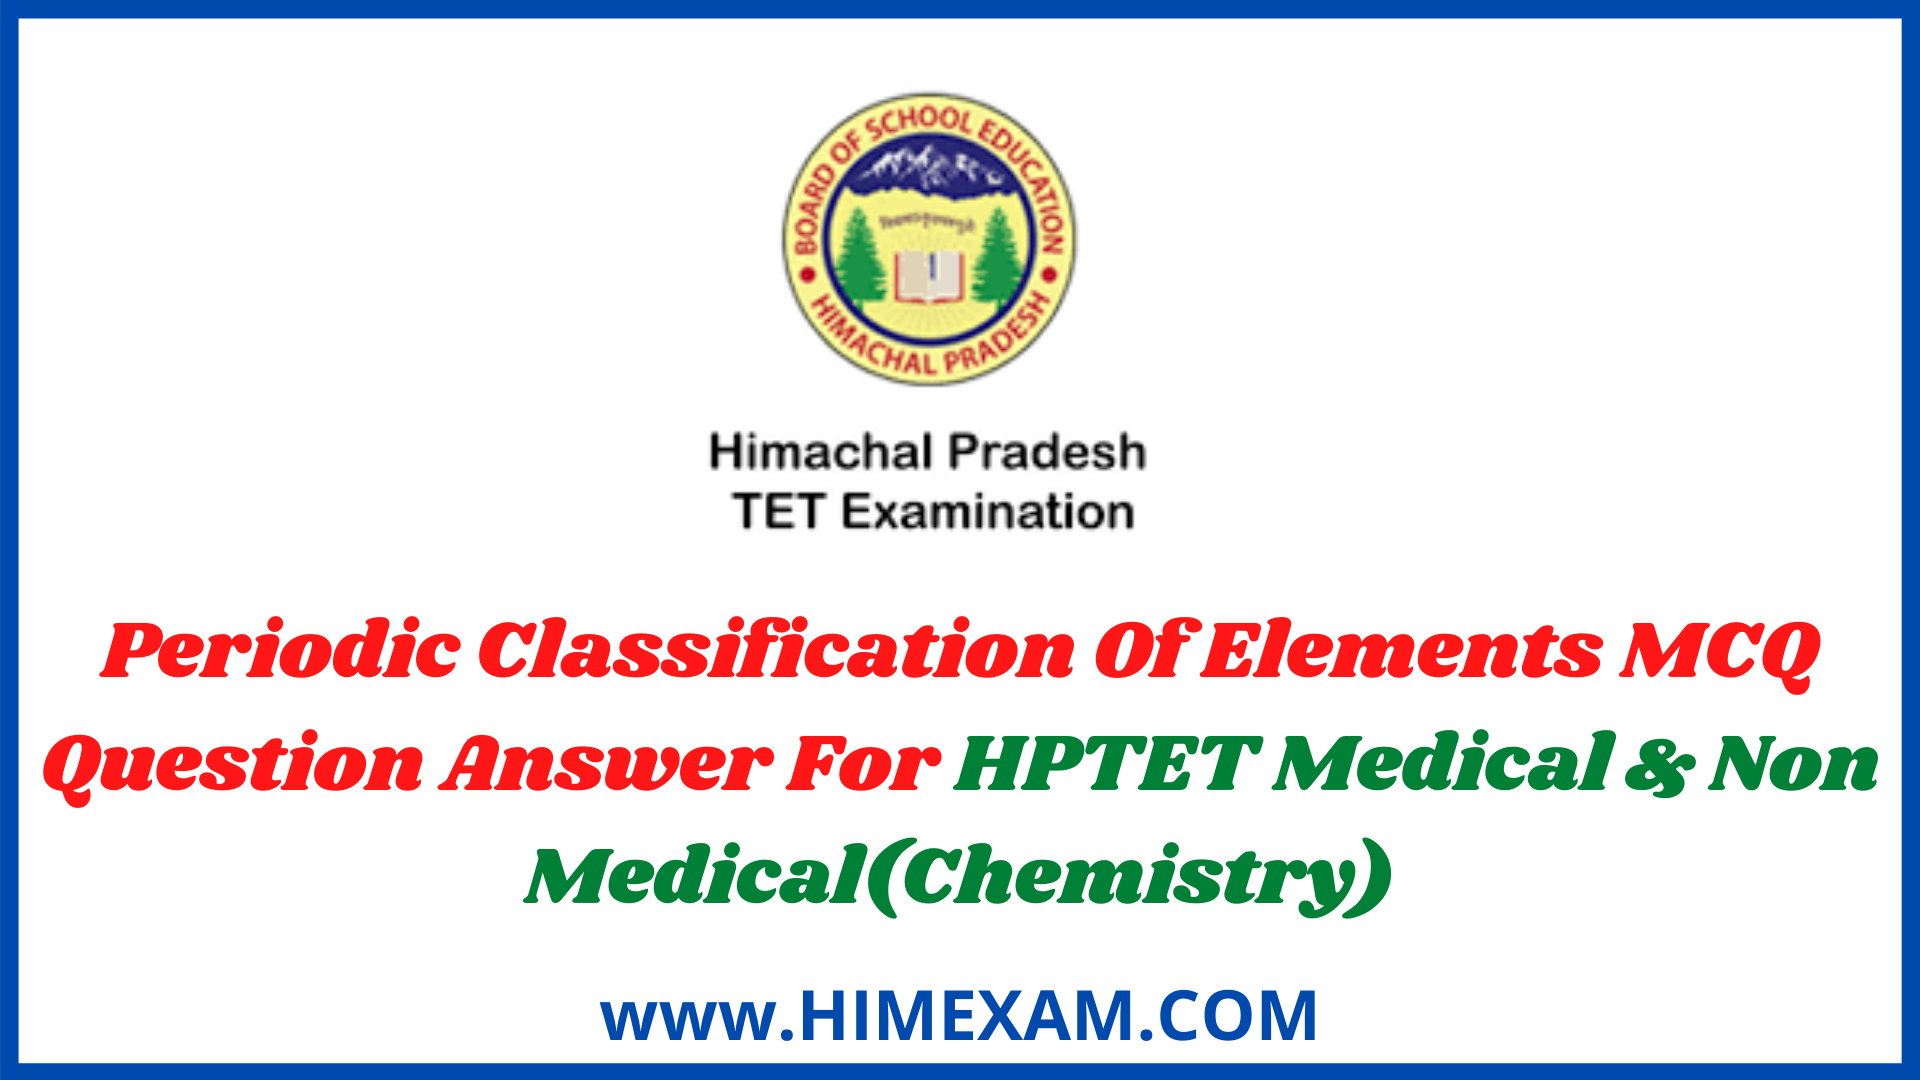 Periodic Classification Of Elements MCQ Question Answer For HPTET